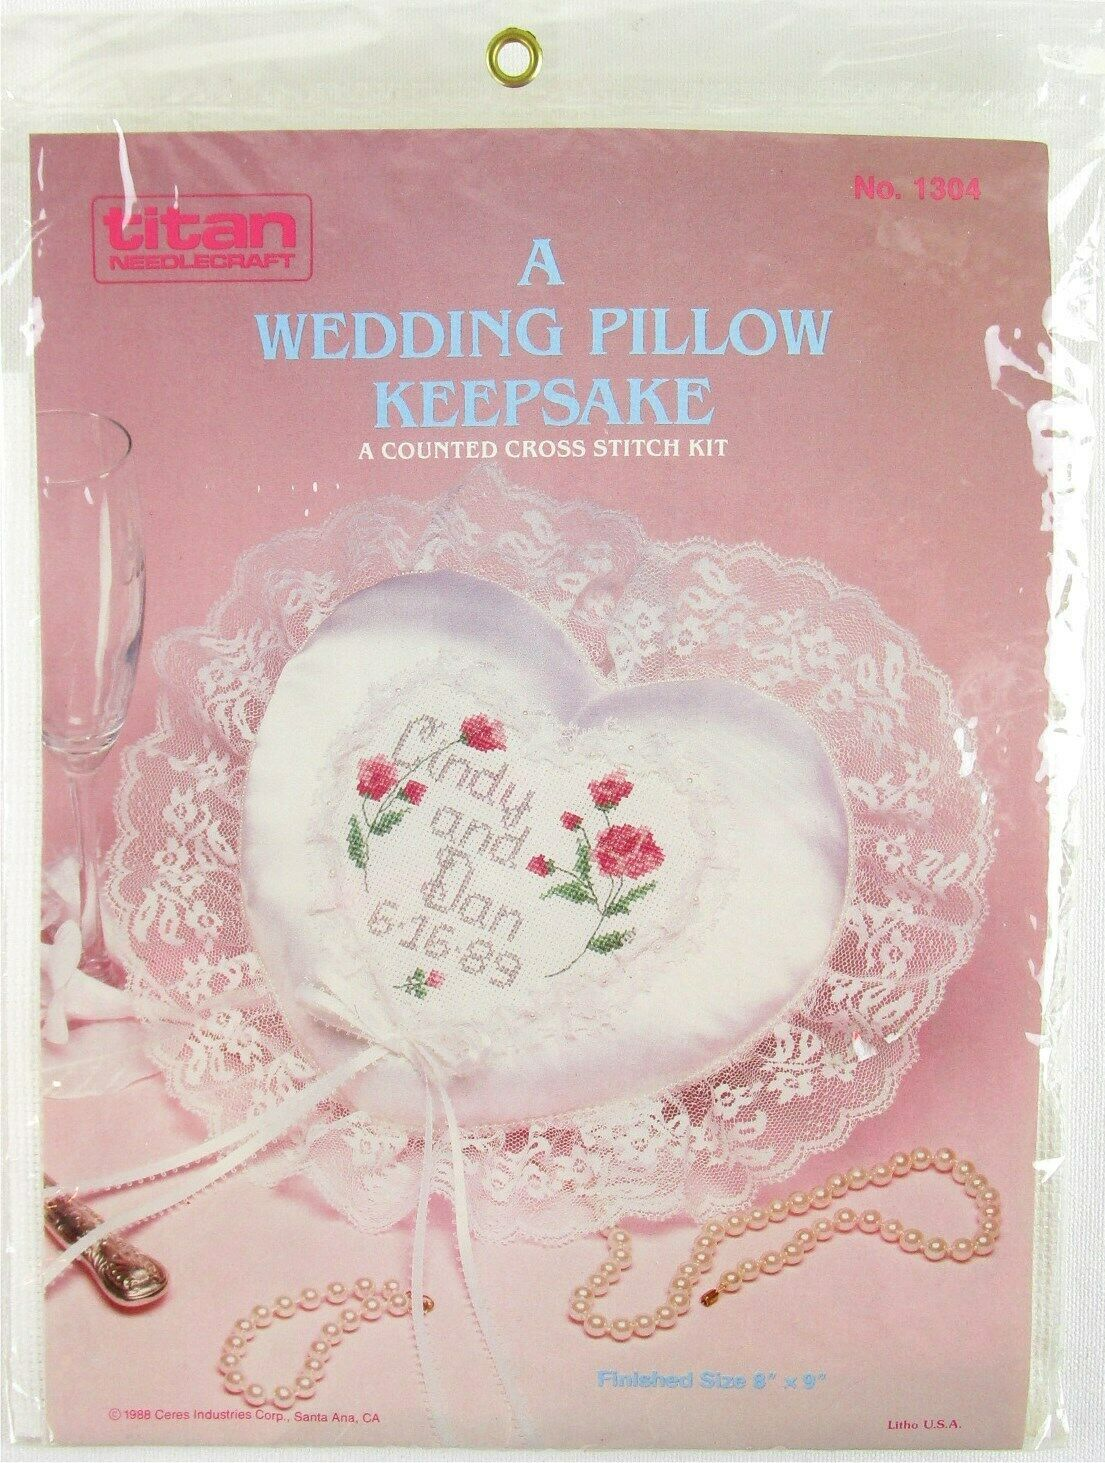 Primary image for NOS Titan Needlecraft A Wedding Pillow Keepsake Counted Cross Stitch Kit, #1304